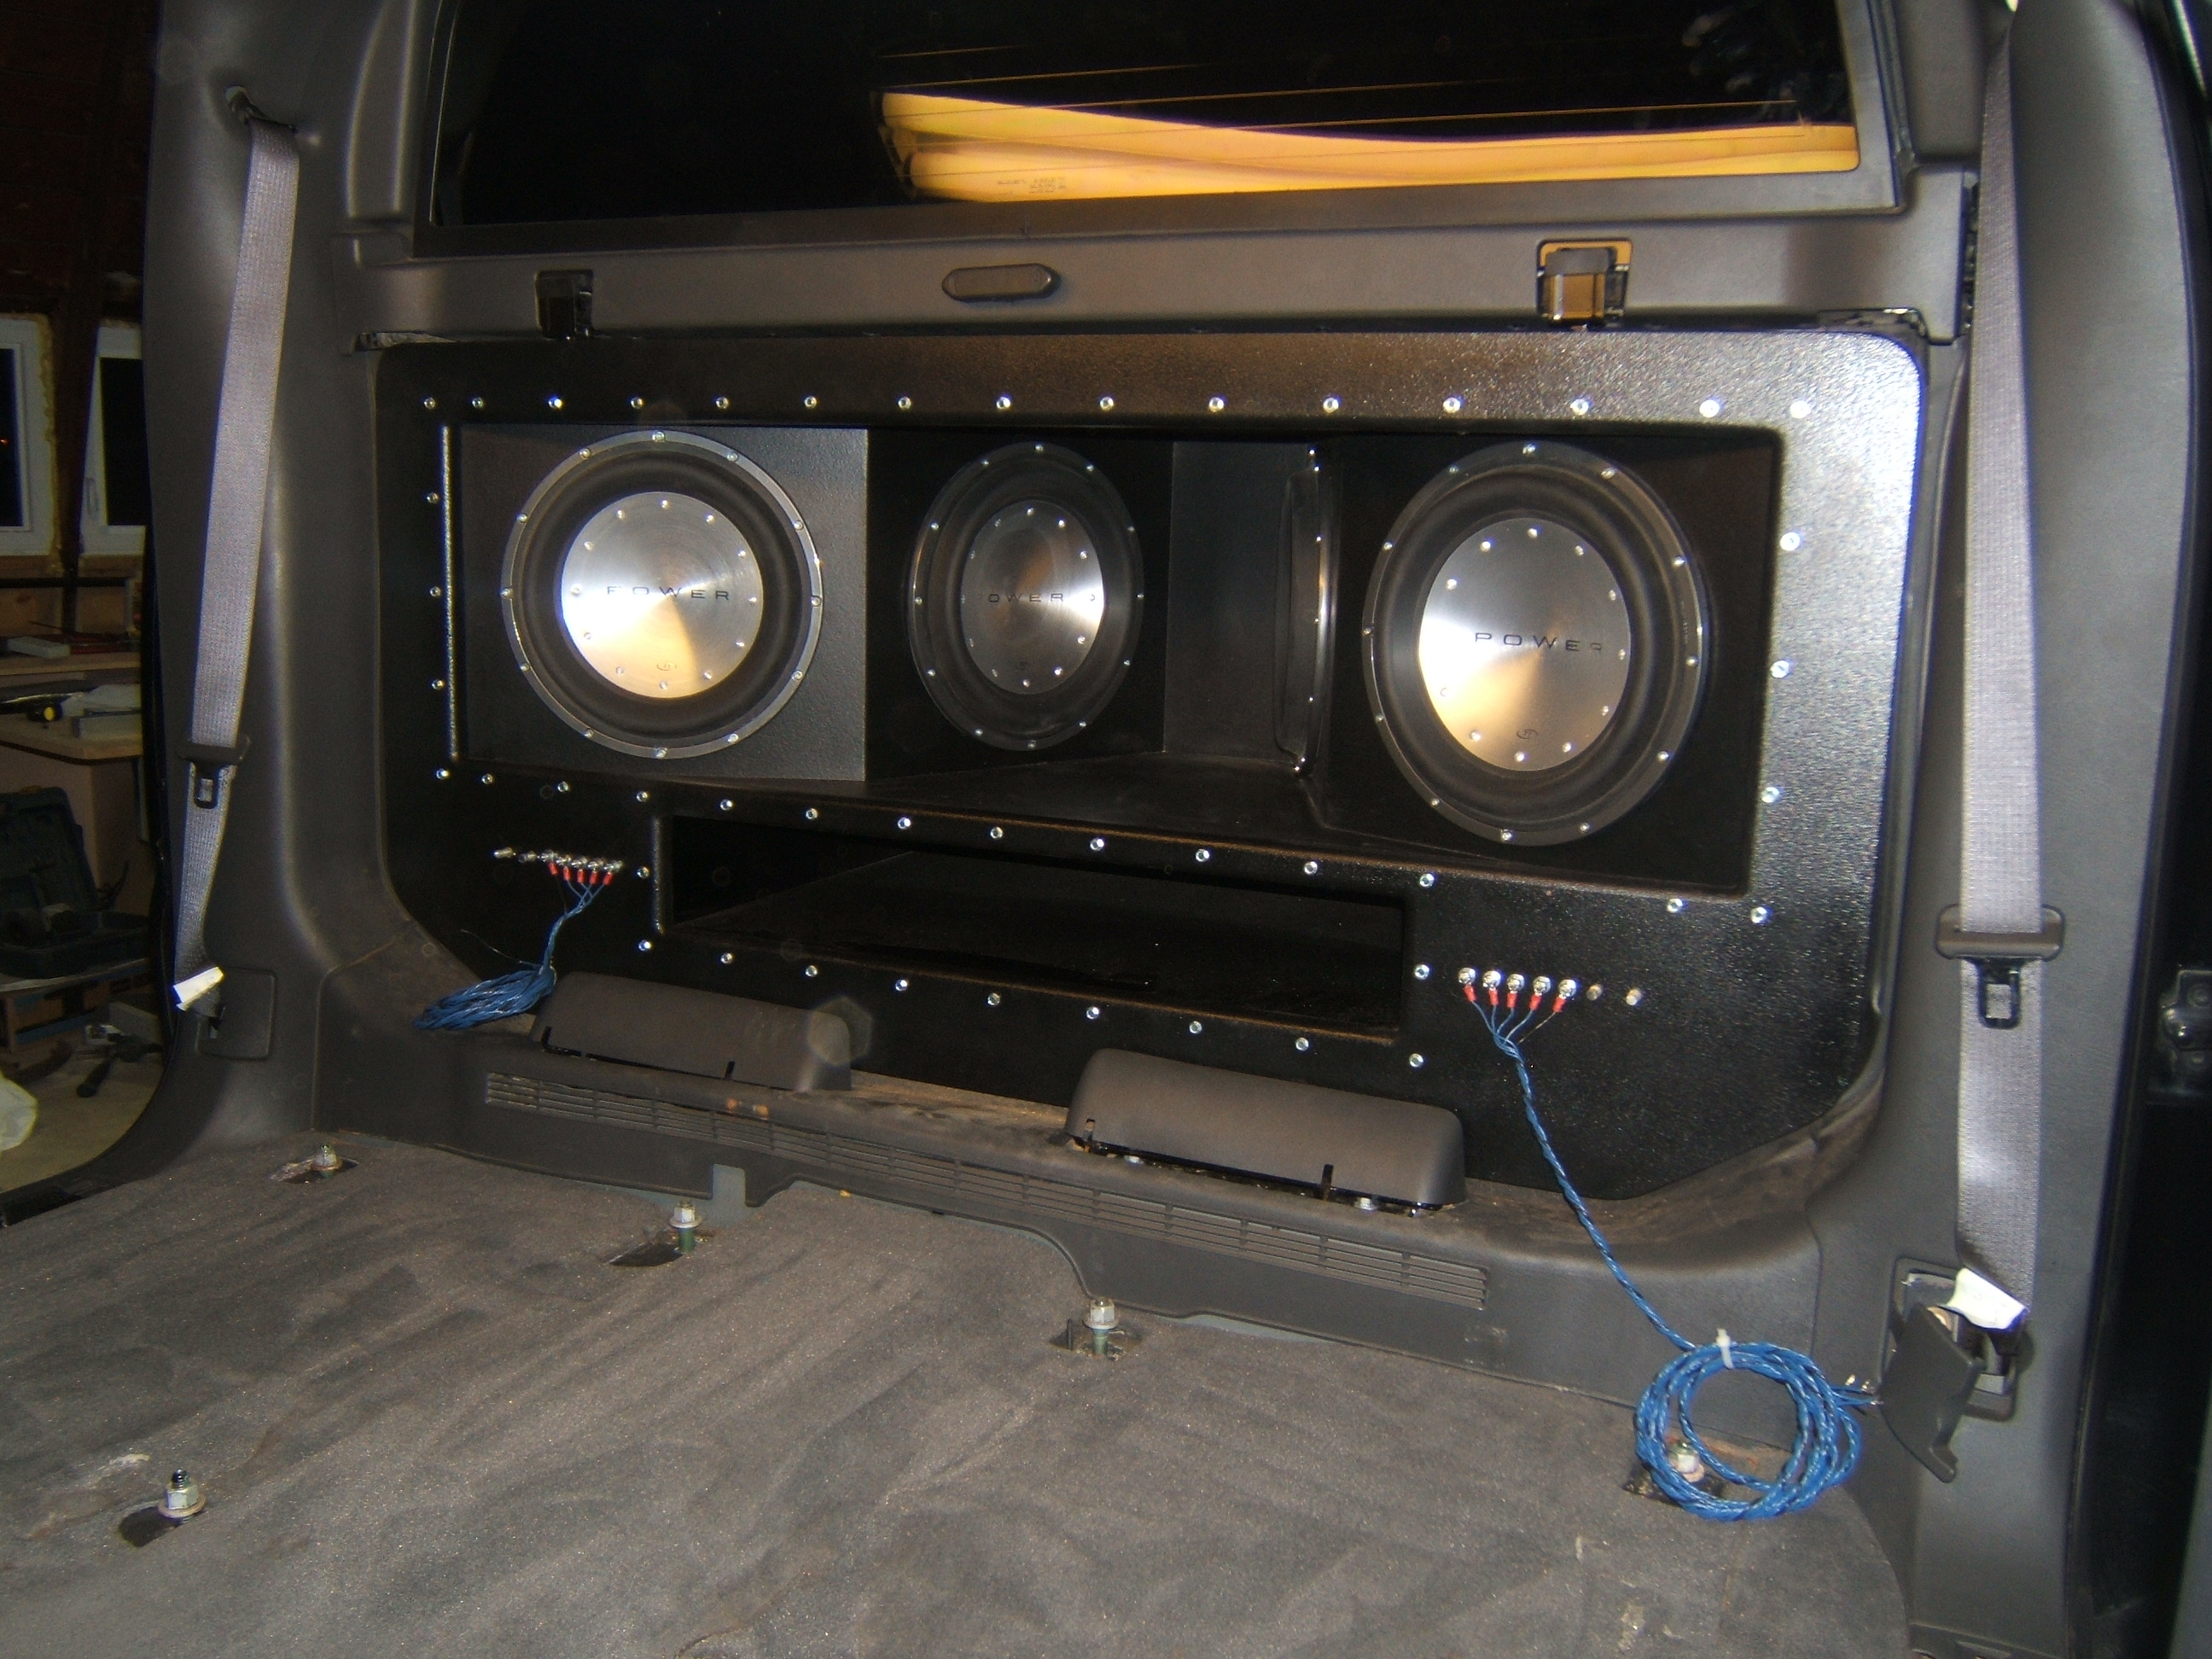 Asc package chevy silverado 07 12 extended cab truck dual 12 additionally besides moreover also q chevy avalanche subwoofers boxes